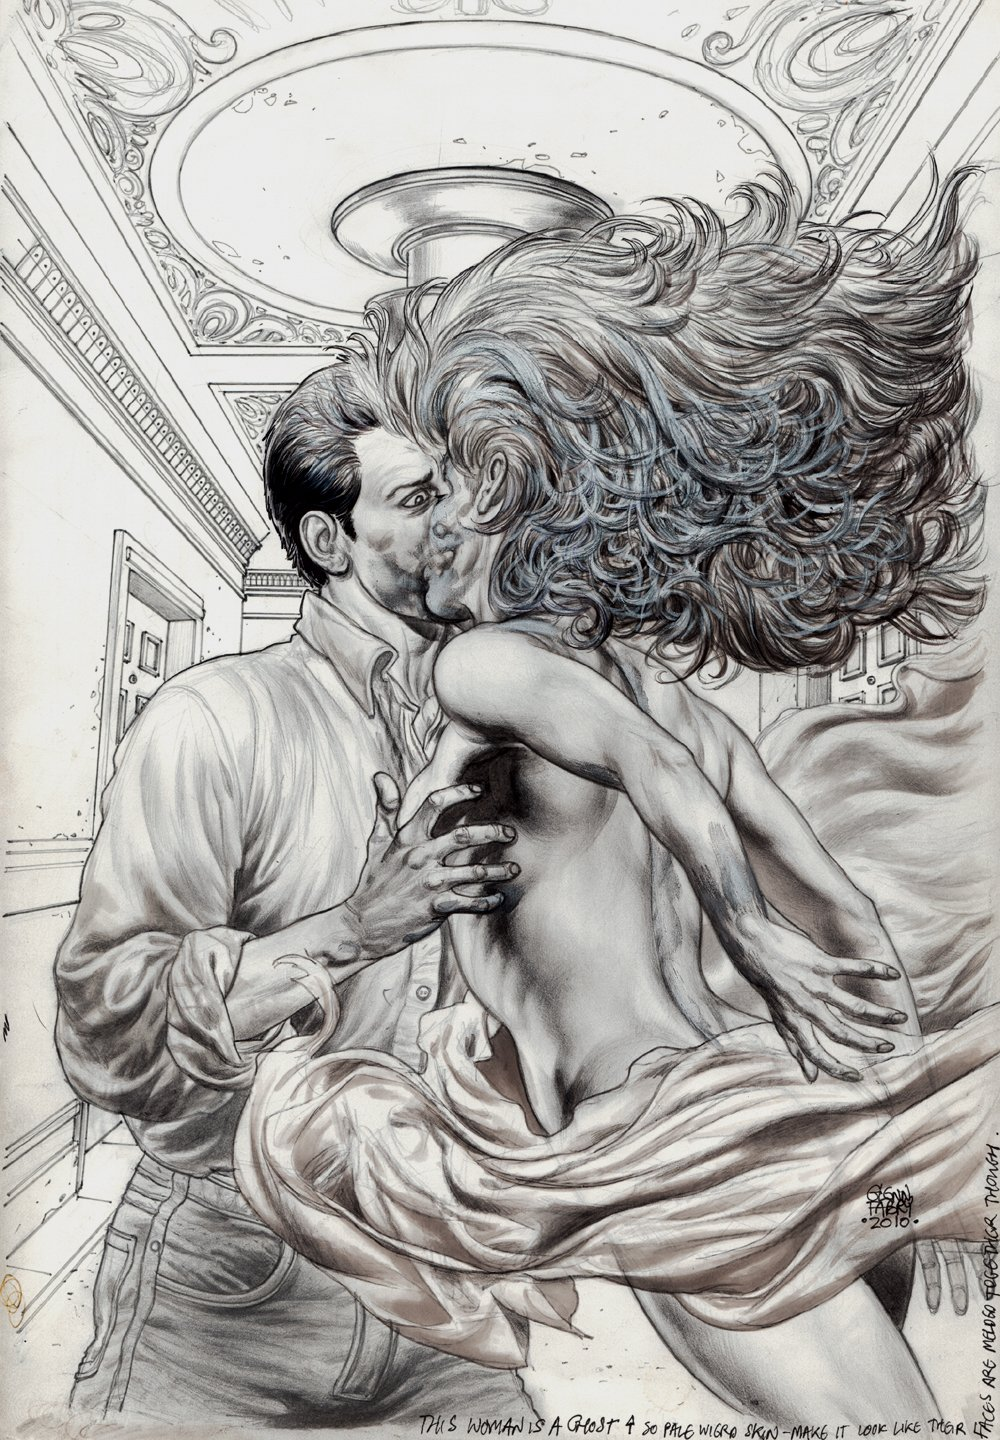 Lot 13 #2 Cover (KISSING A SEXY GHOST!) 2010